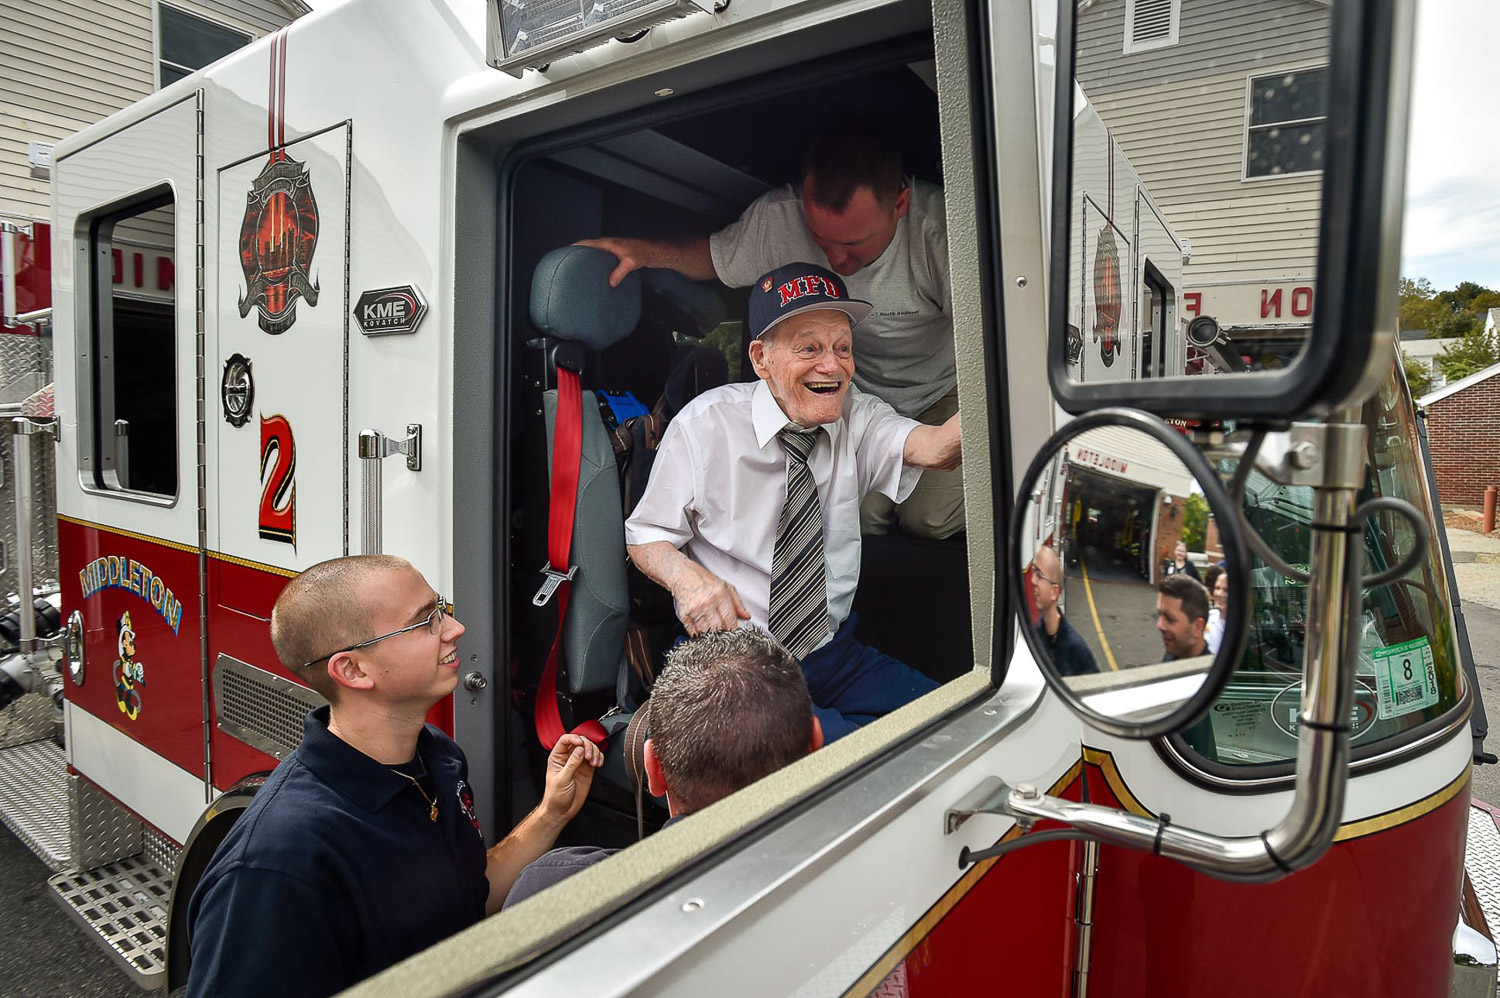 2 of 9 Honorary Middleton firefighter Bobby Jensen is helped into Middleton Engine 2 as he prepares to go for a ride around the block during his visit at the Middleton Fire Department, Thursday, Sept. 14, 2017. [Wicked Local Photo / David Sokol]